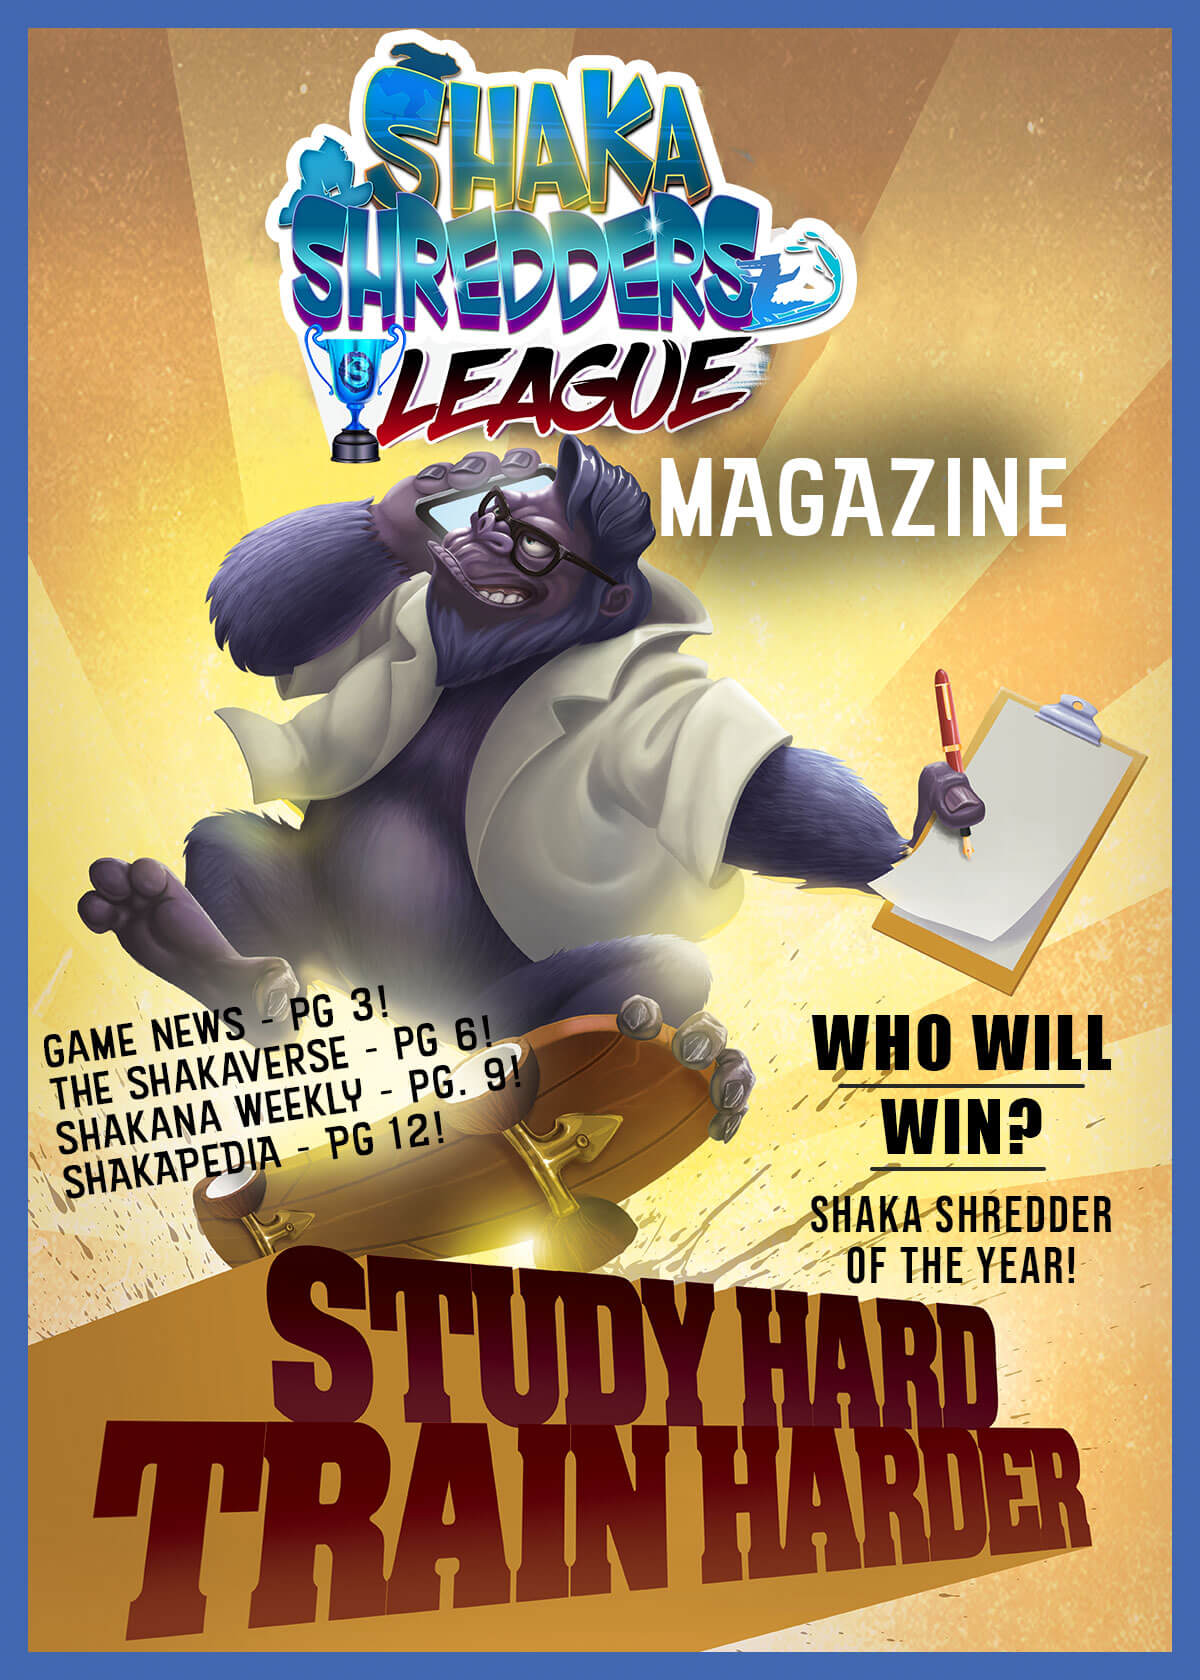 Shaka Shredders League Magazine - Dr. Kokonut Cover